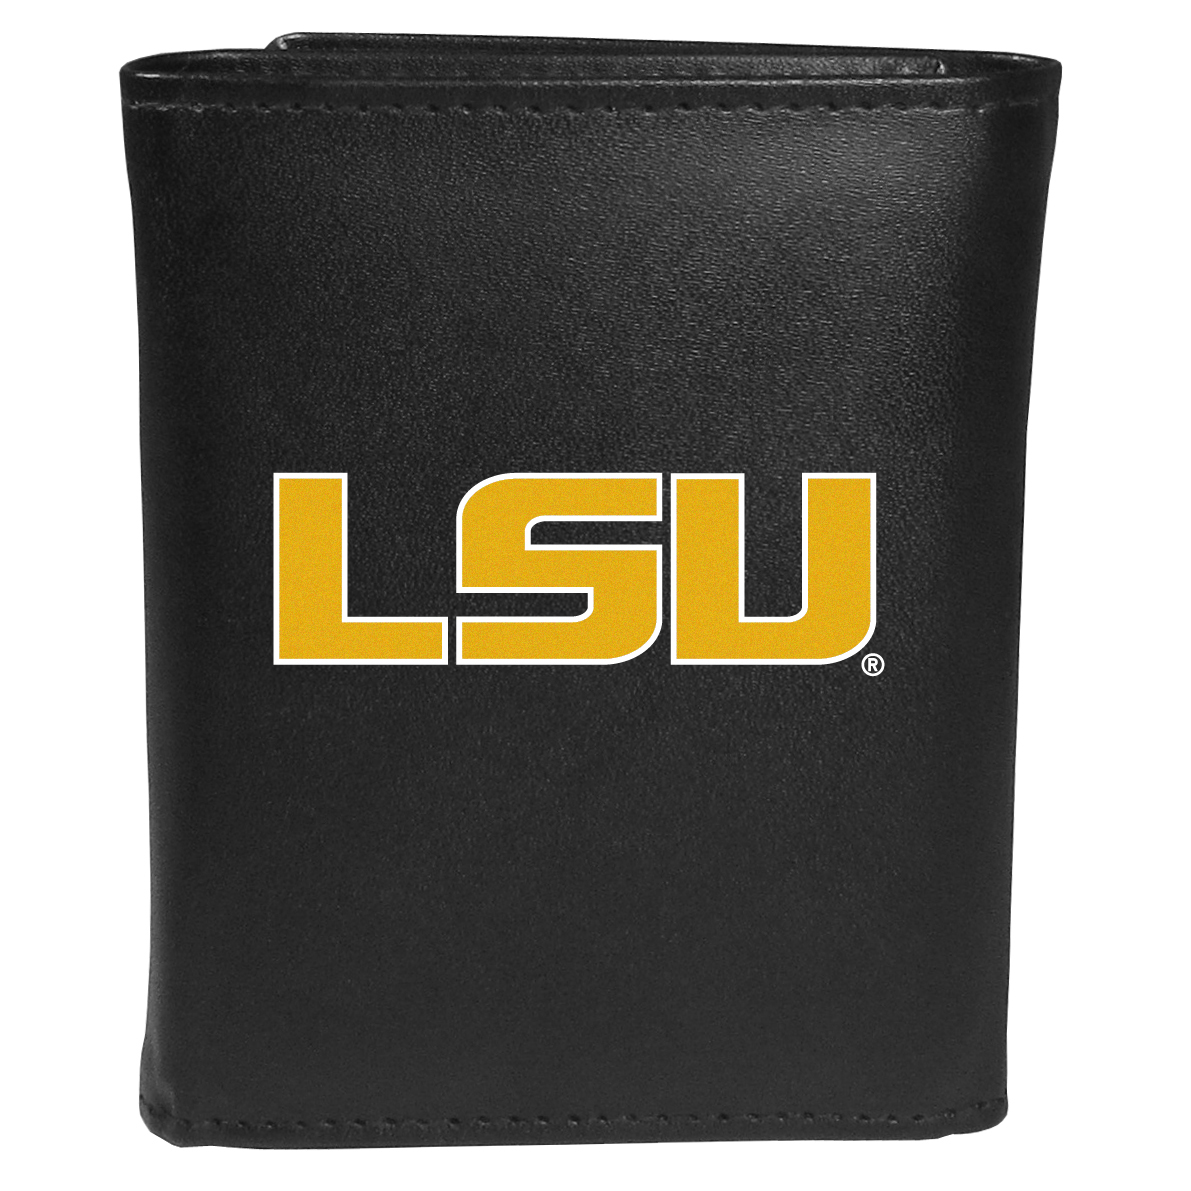 LSU Tigers Tri-fold Wallet Large Logo - Sports fans do not have to sacrifice style with this classic tri-fold wallet that sports theLSU Tigers?extra large logo. This men's fashion accessory has a leather grain look and expert craftmanship for a quality wallet at a great price. The wallet features inner credit card slots, windowed ID slot and a large billfold pocket. The front of the wallet features an extra large printed team logo.